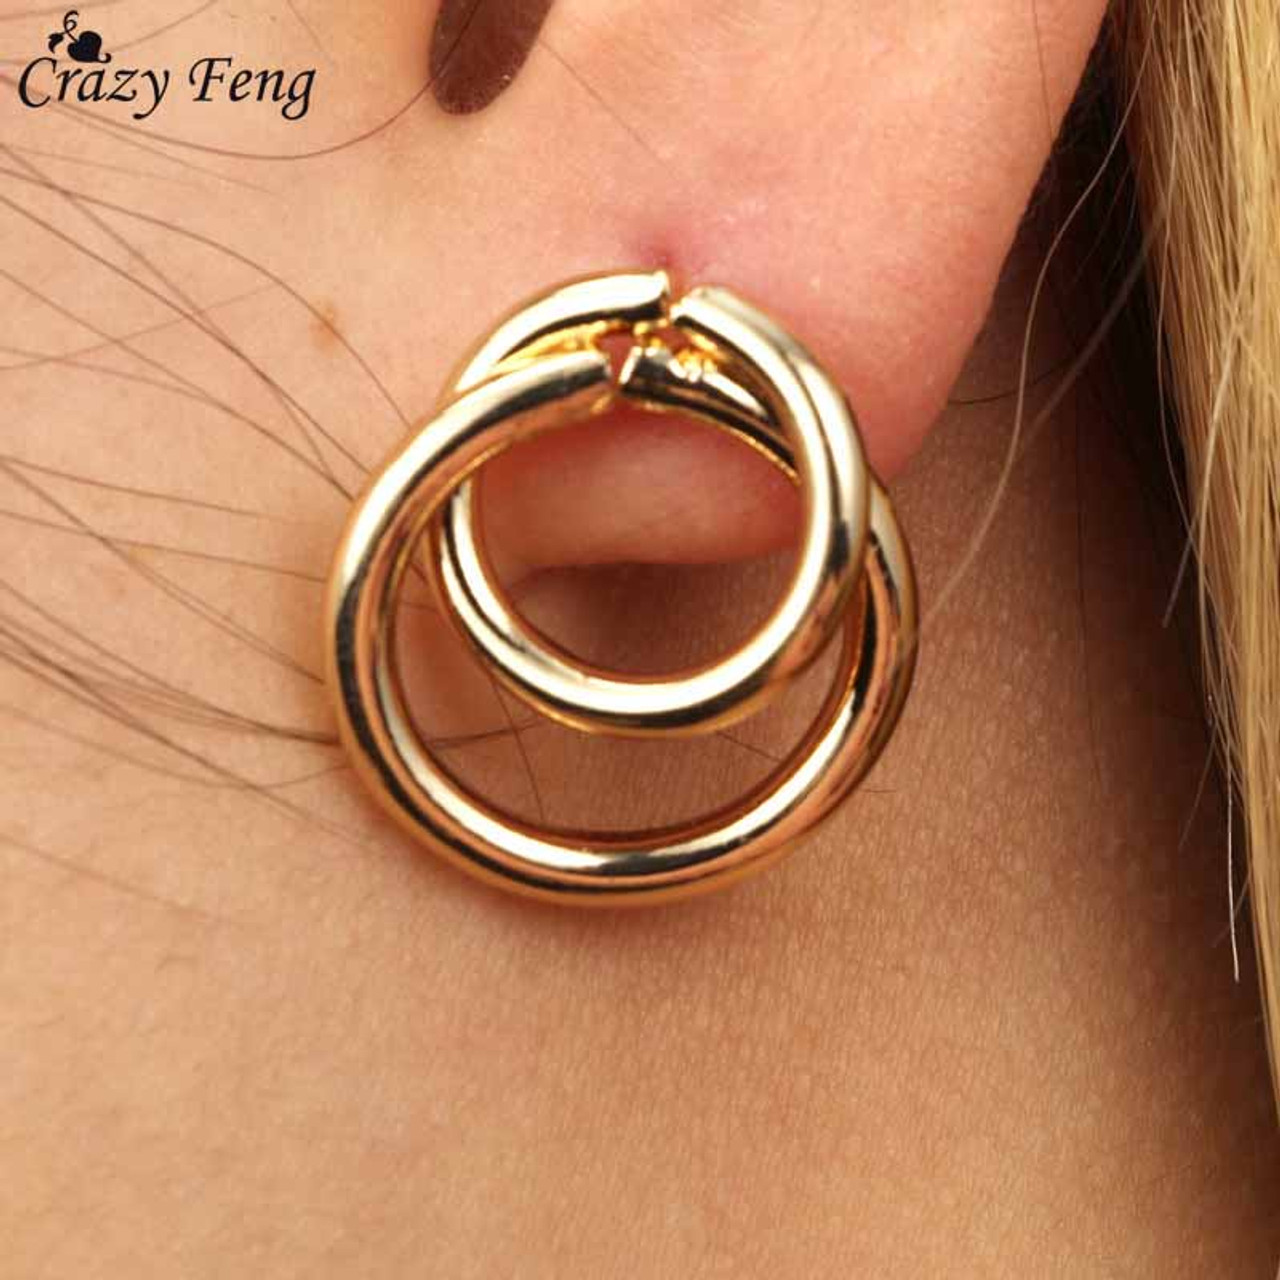 af0459548 Crazy Feng Trendy Statement Earring Jewelry For Women Fashion Gold/Silver  Color Double Round Circle ...